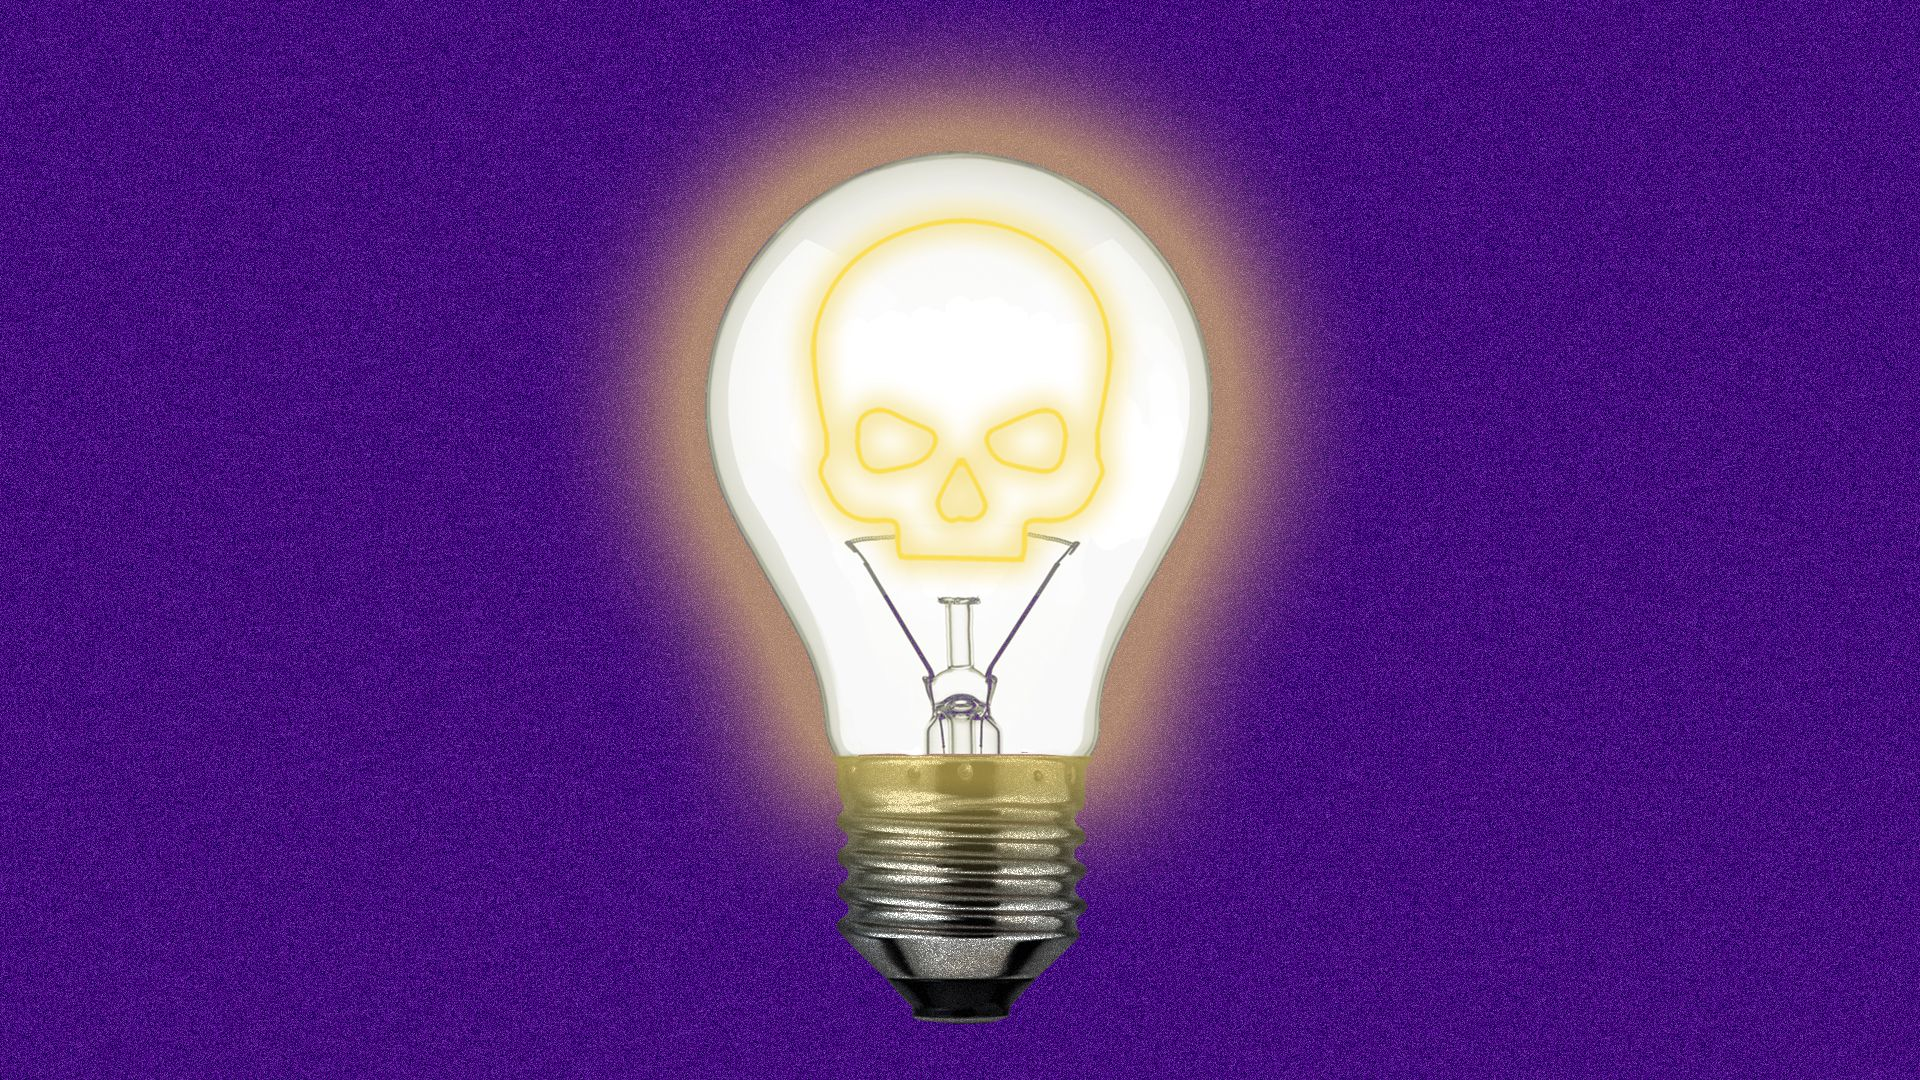 An illustration of a lightbulb whose filament is the outline of a skull.